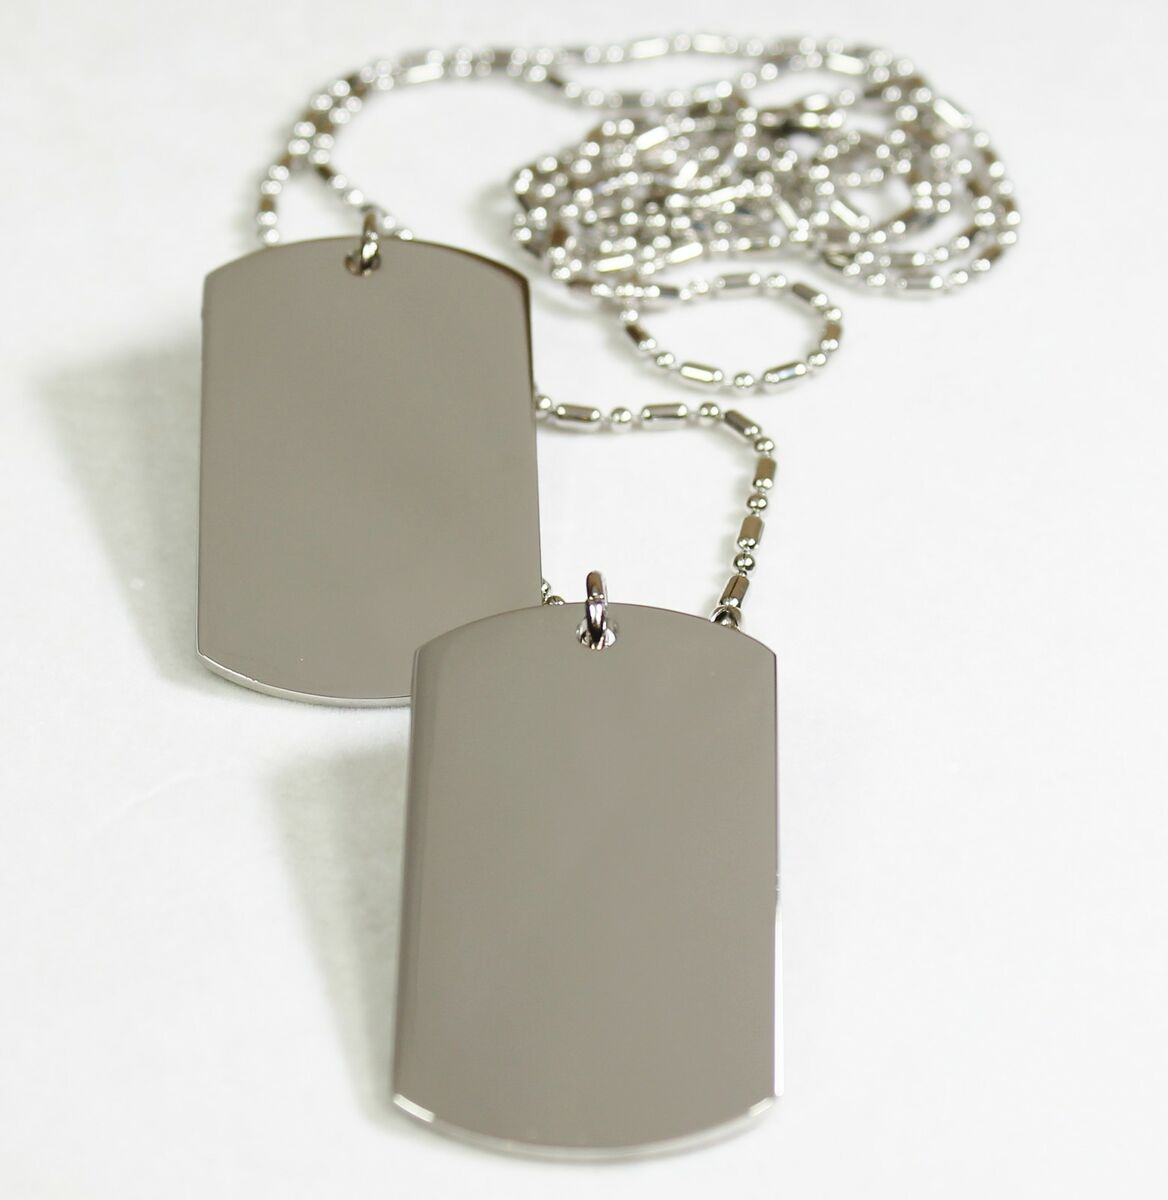 Plated Silver Tone Dog Tag Pendant Necklace Military Style